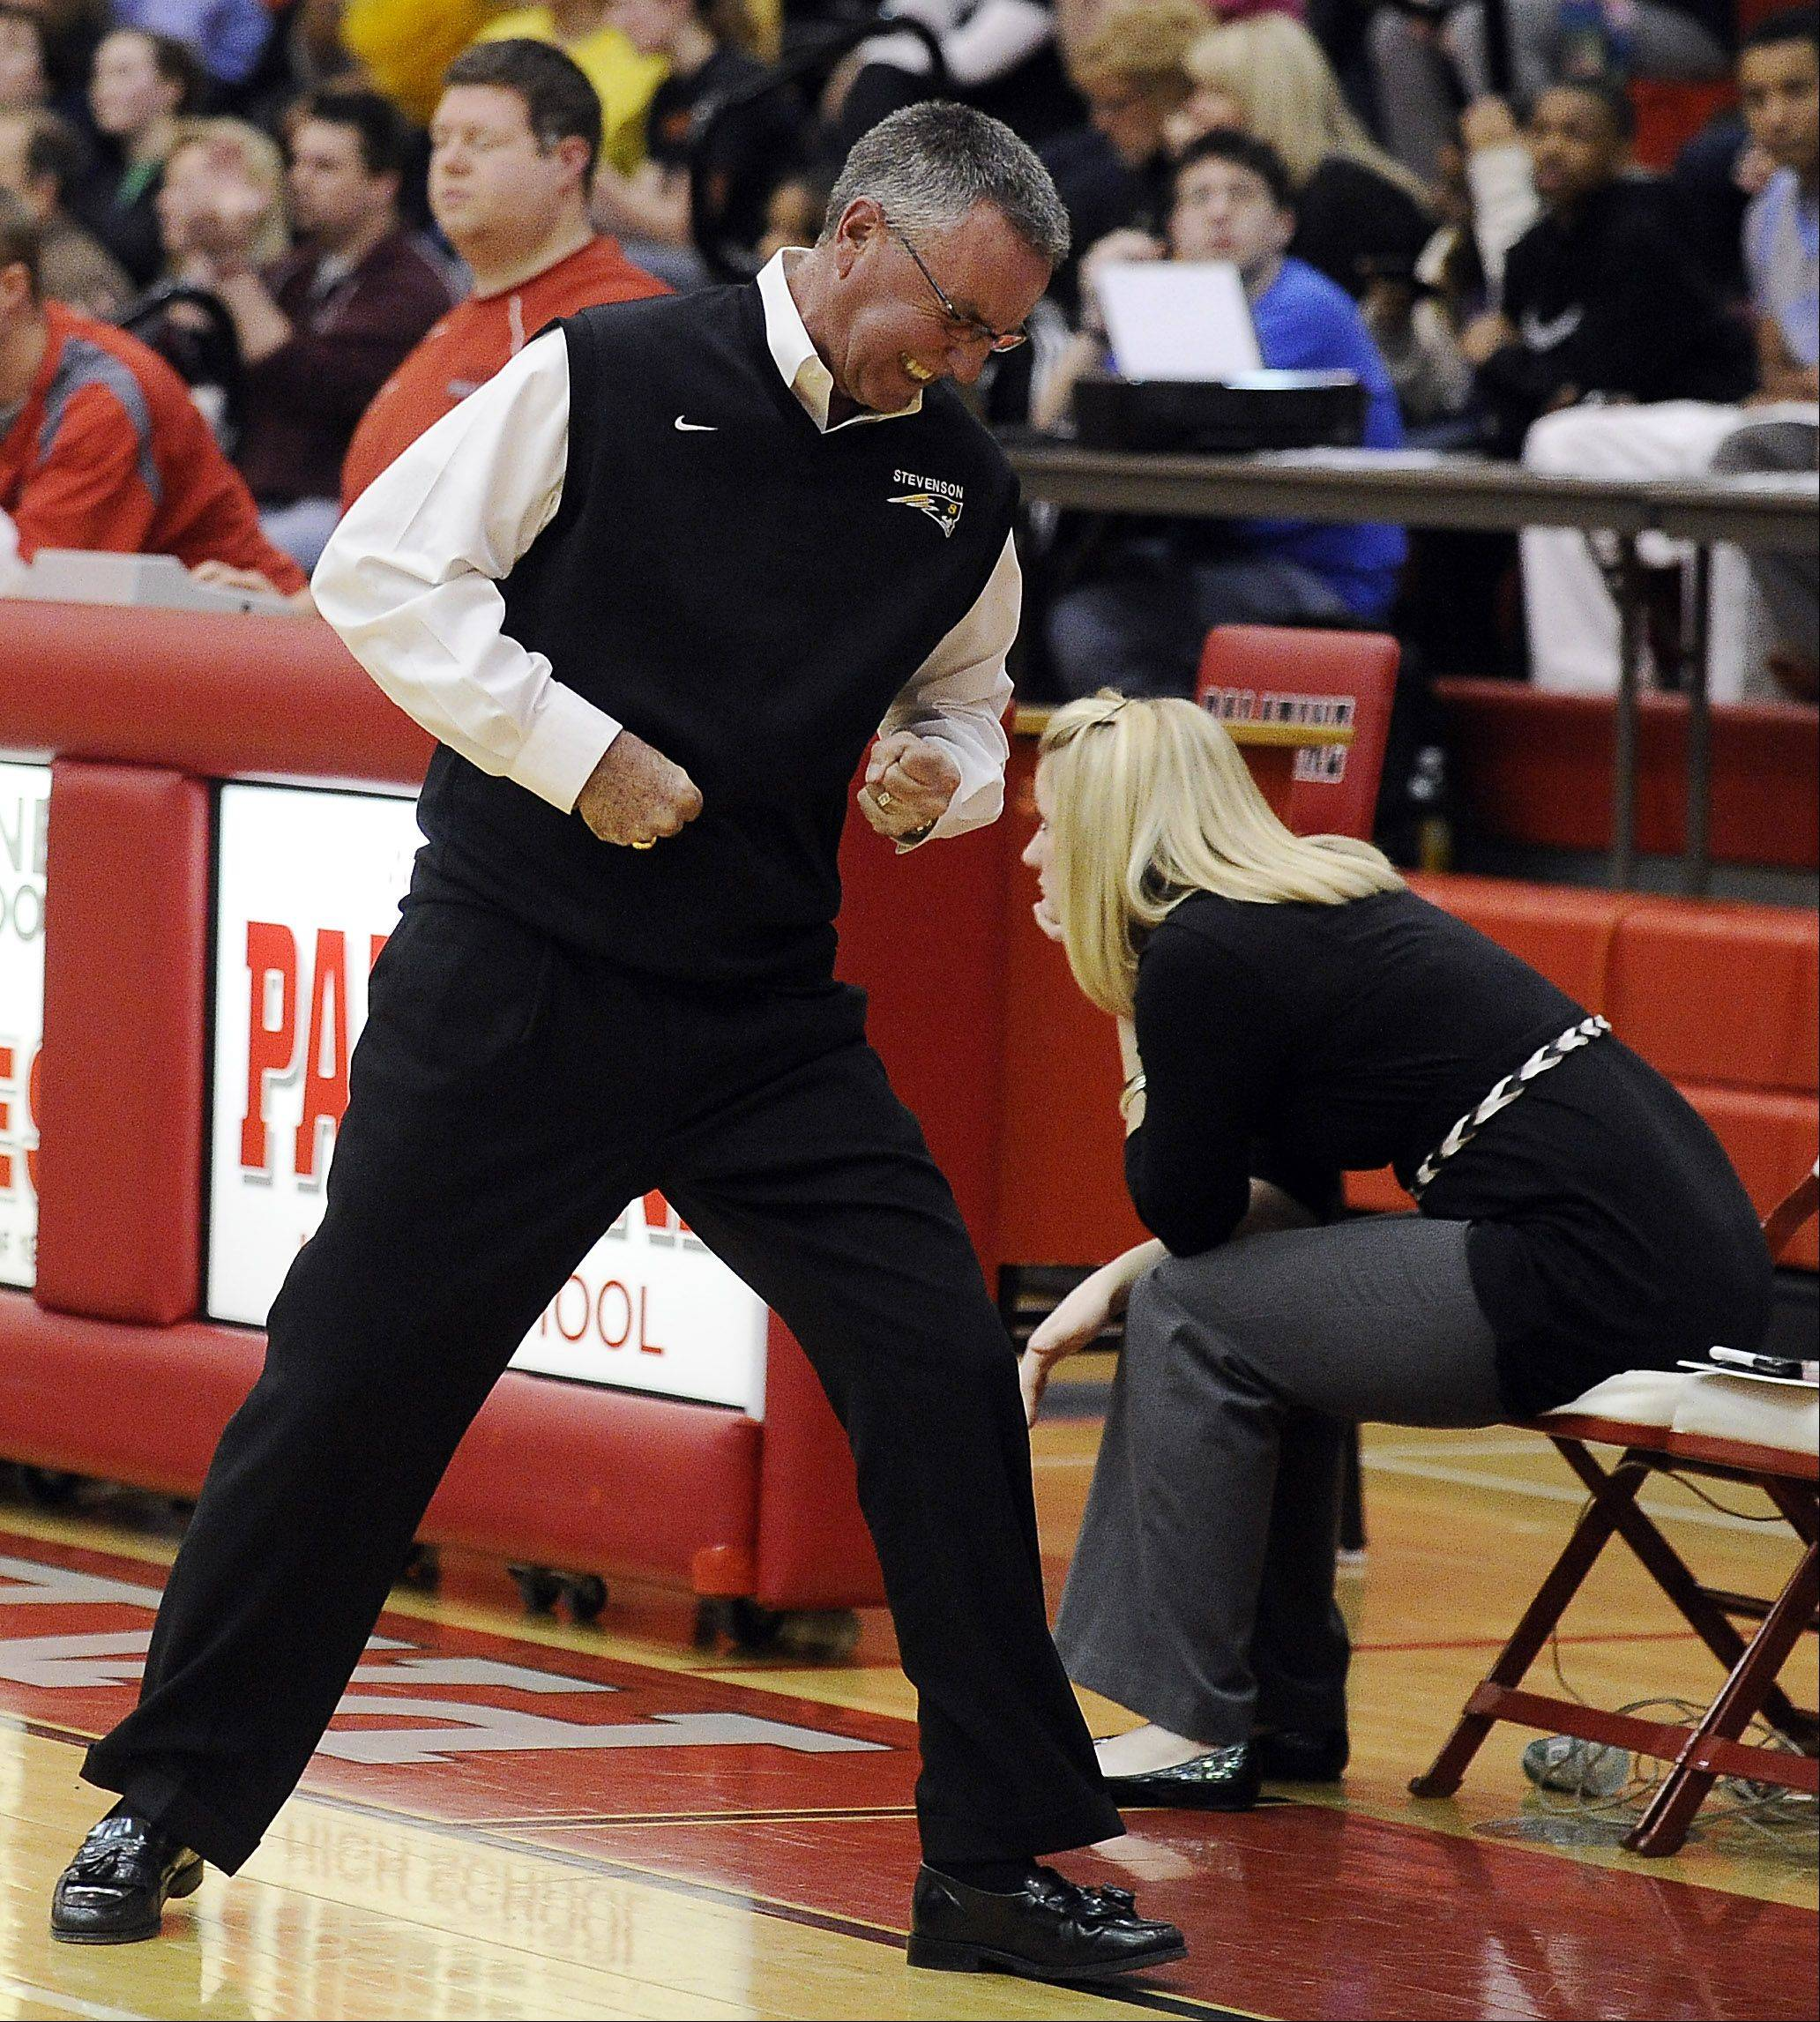 Stevenson coach Tom Dineen shows his frustration on a missed opportunity from his players as his team falls to Zion-Benton's in a sectional semifinal at Palatine High School on Monday.